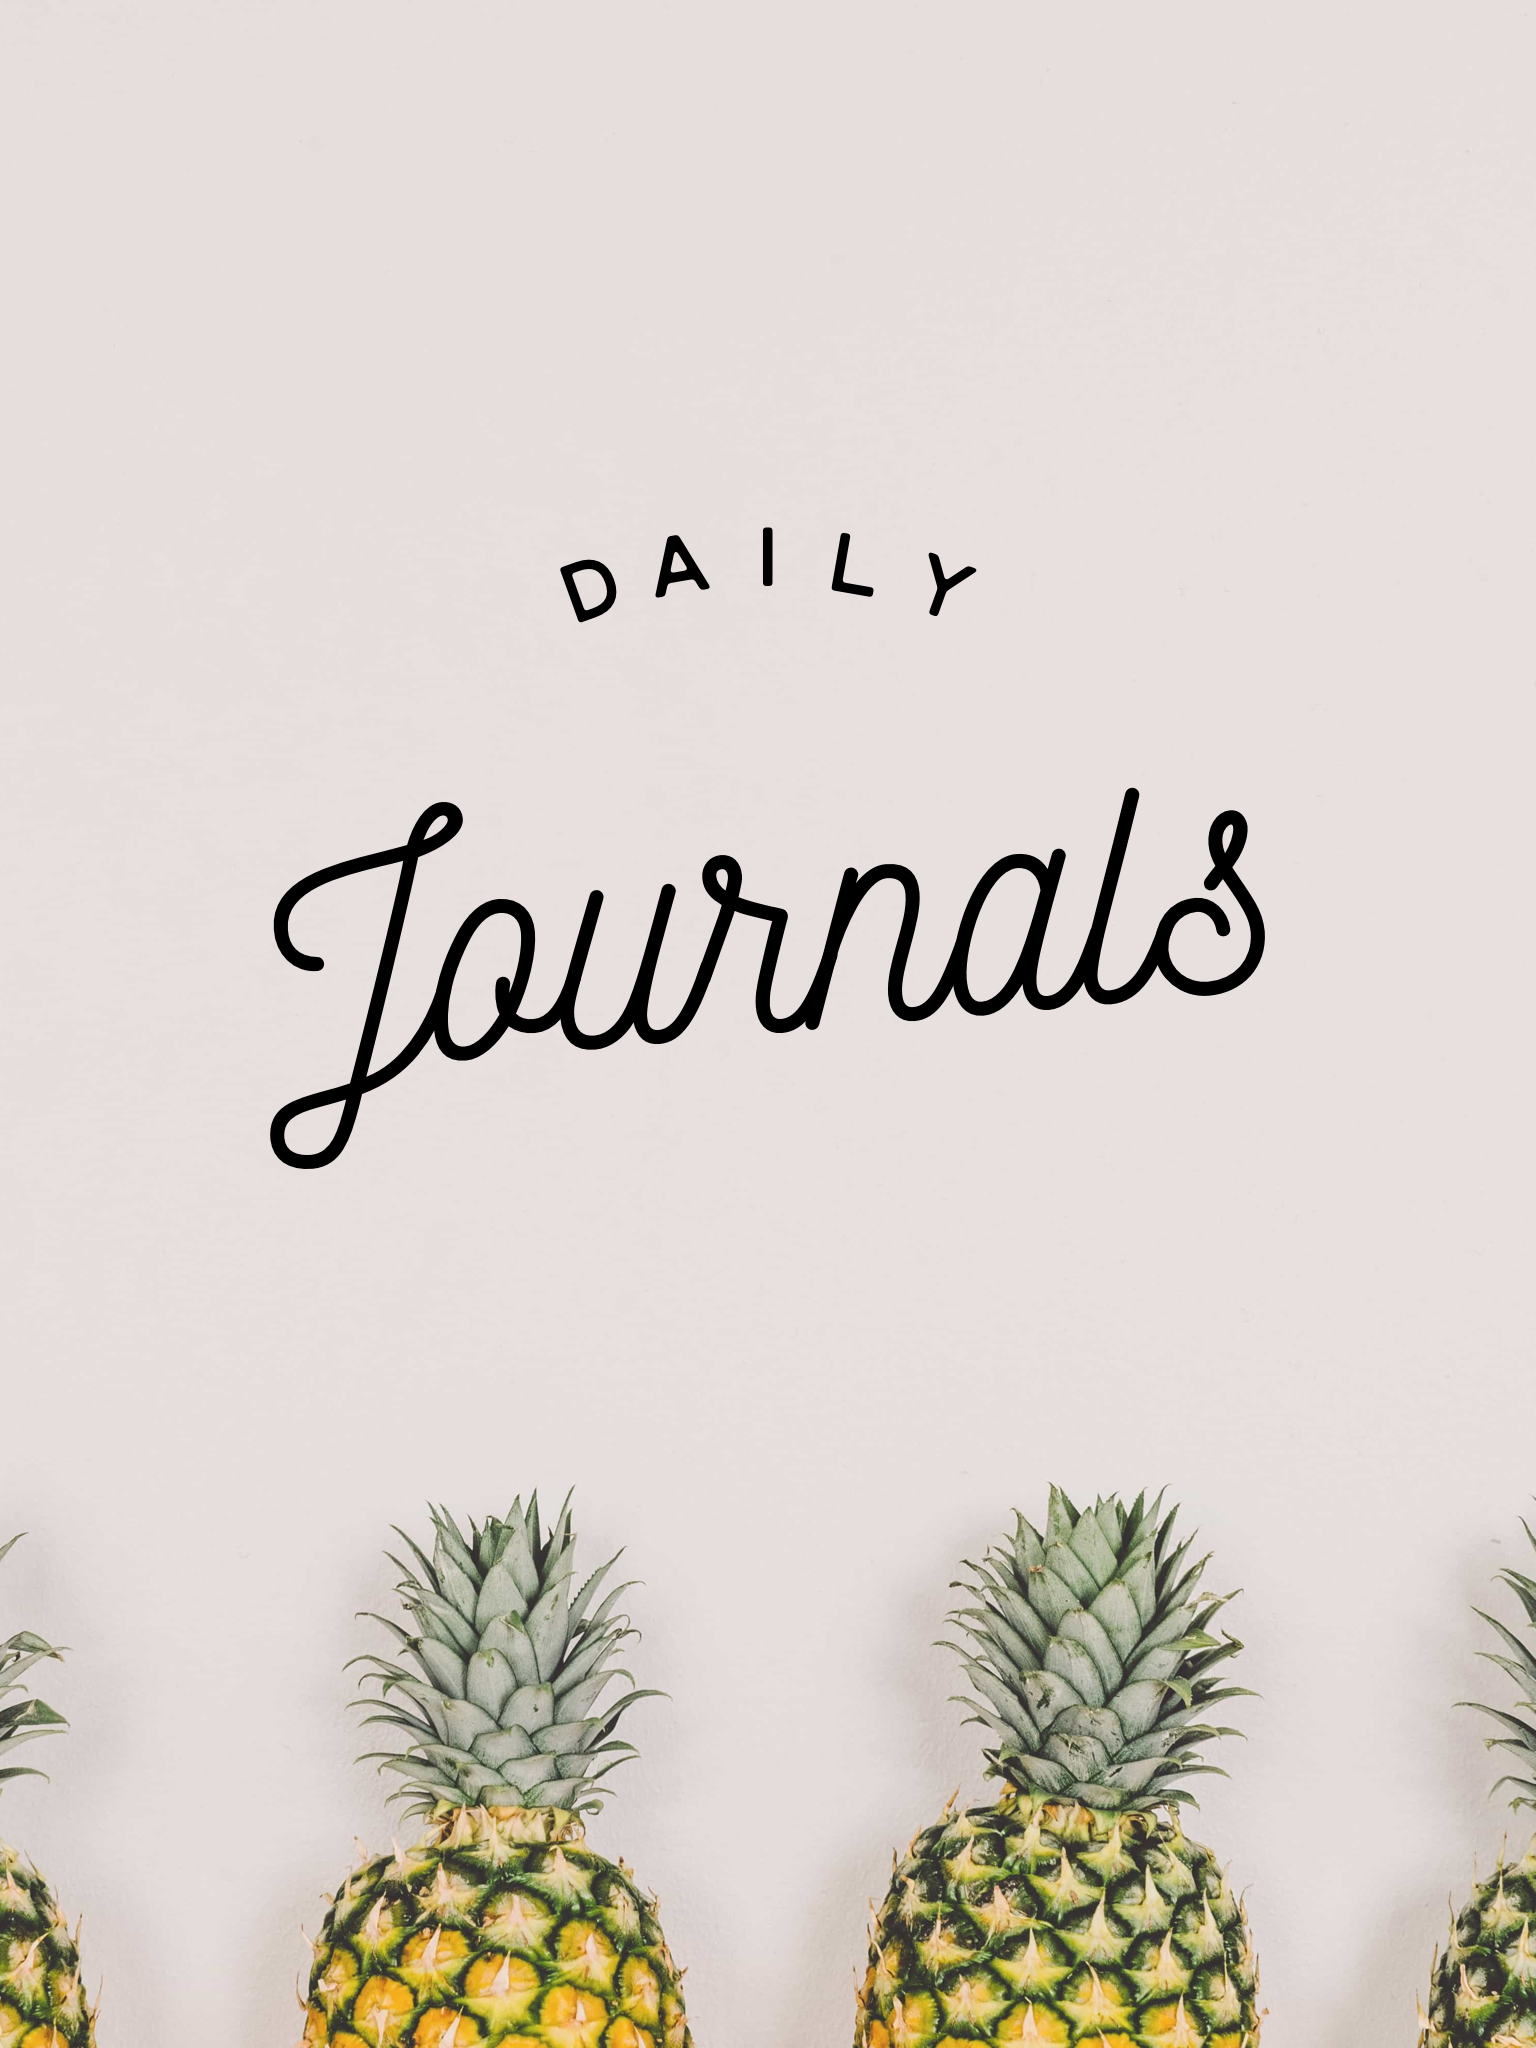 DailyJournals-1.PNG